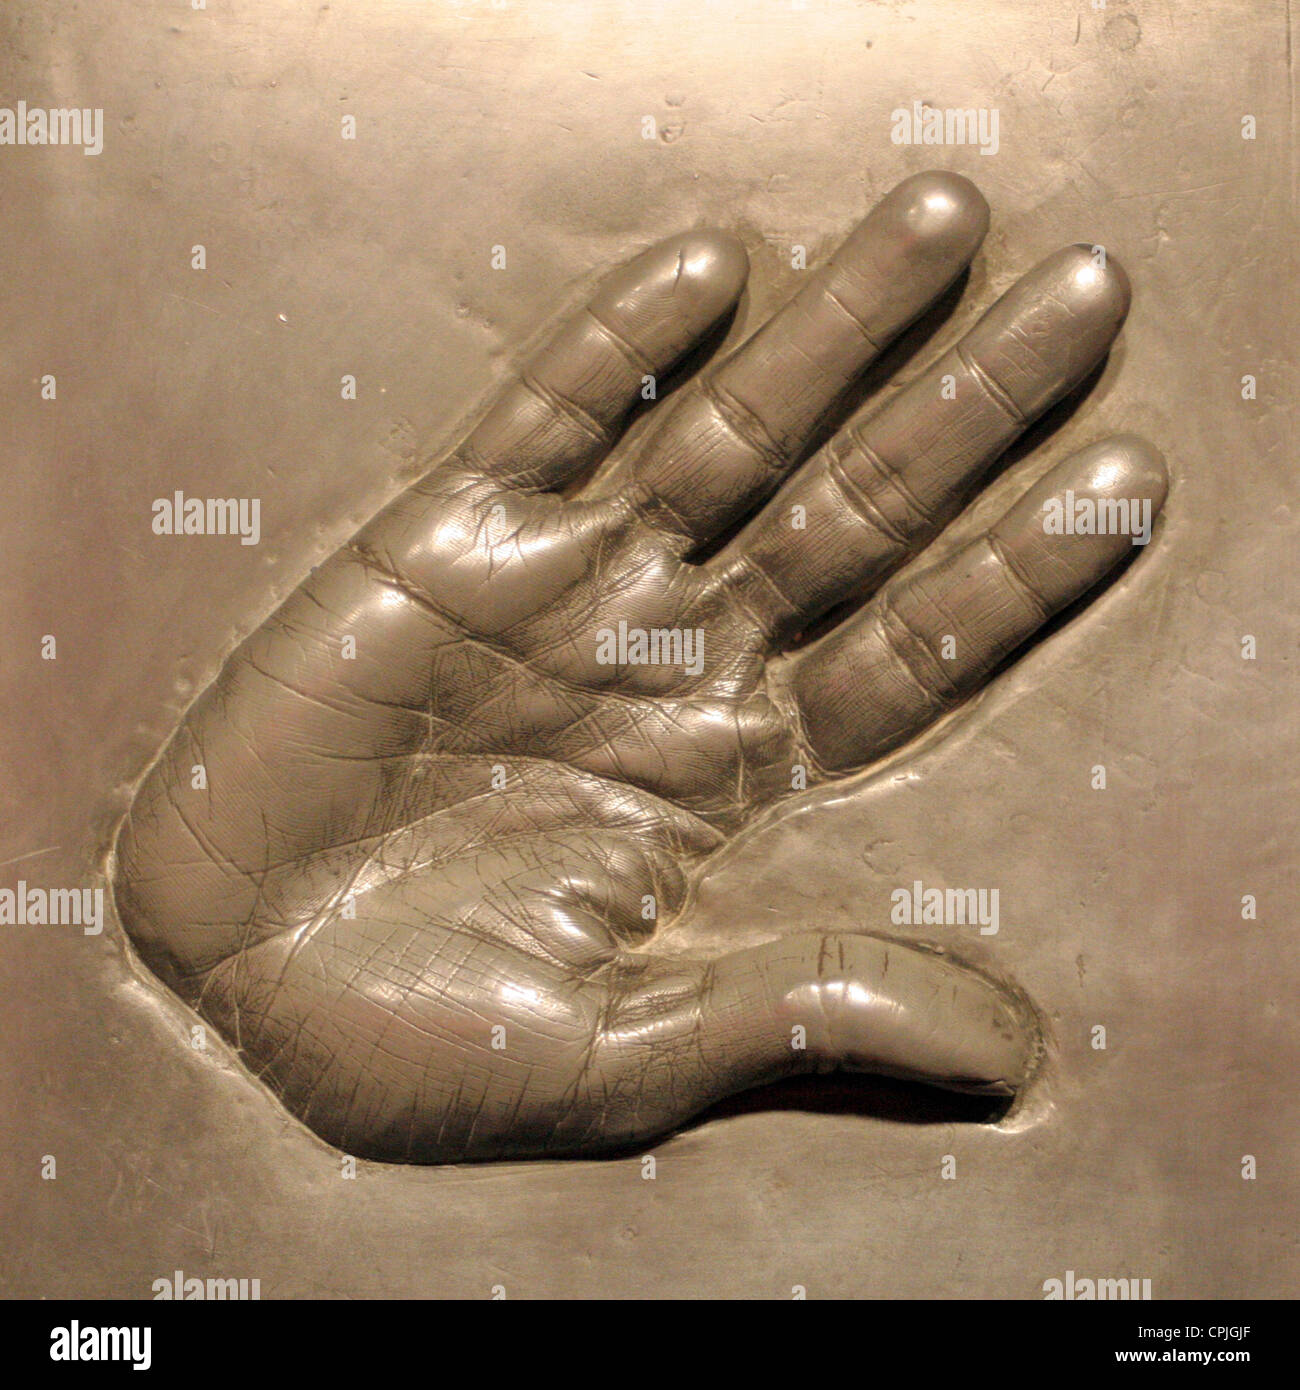 An imprint of a hand in metal in the wax works Madame Tussauds, Berlin, Germany - Stock Image